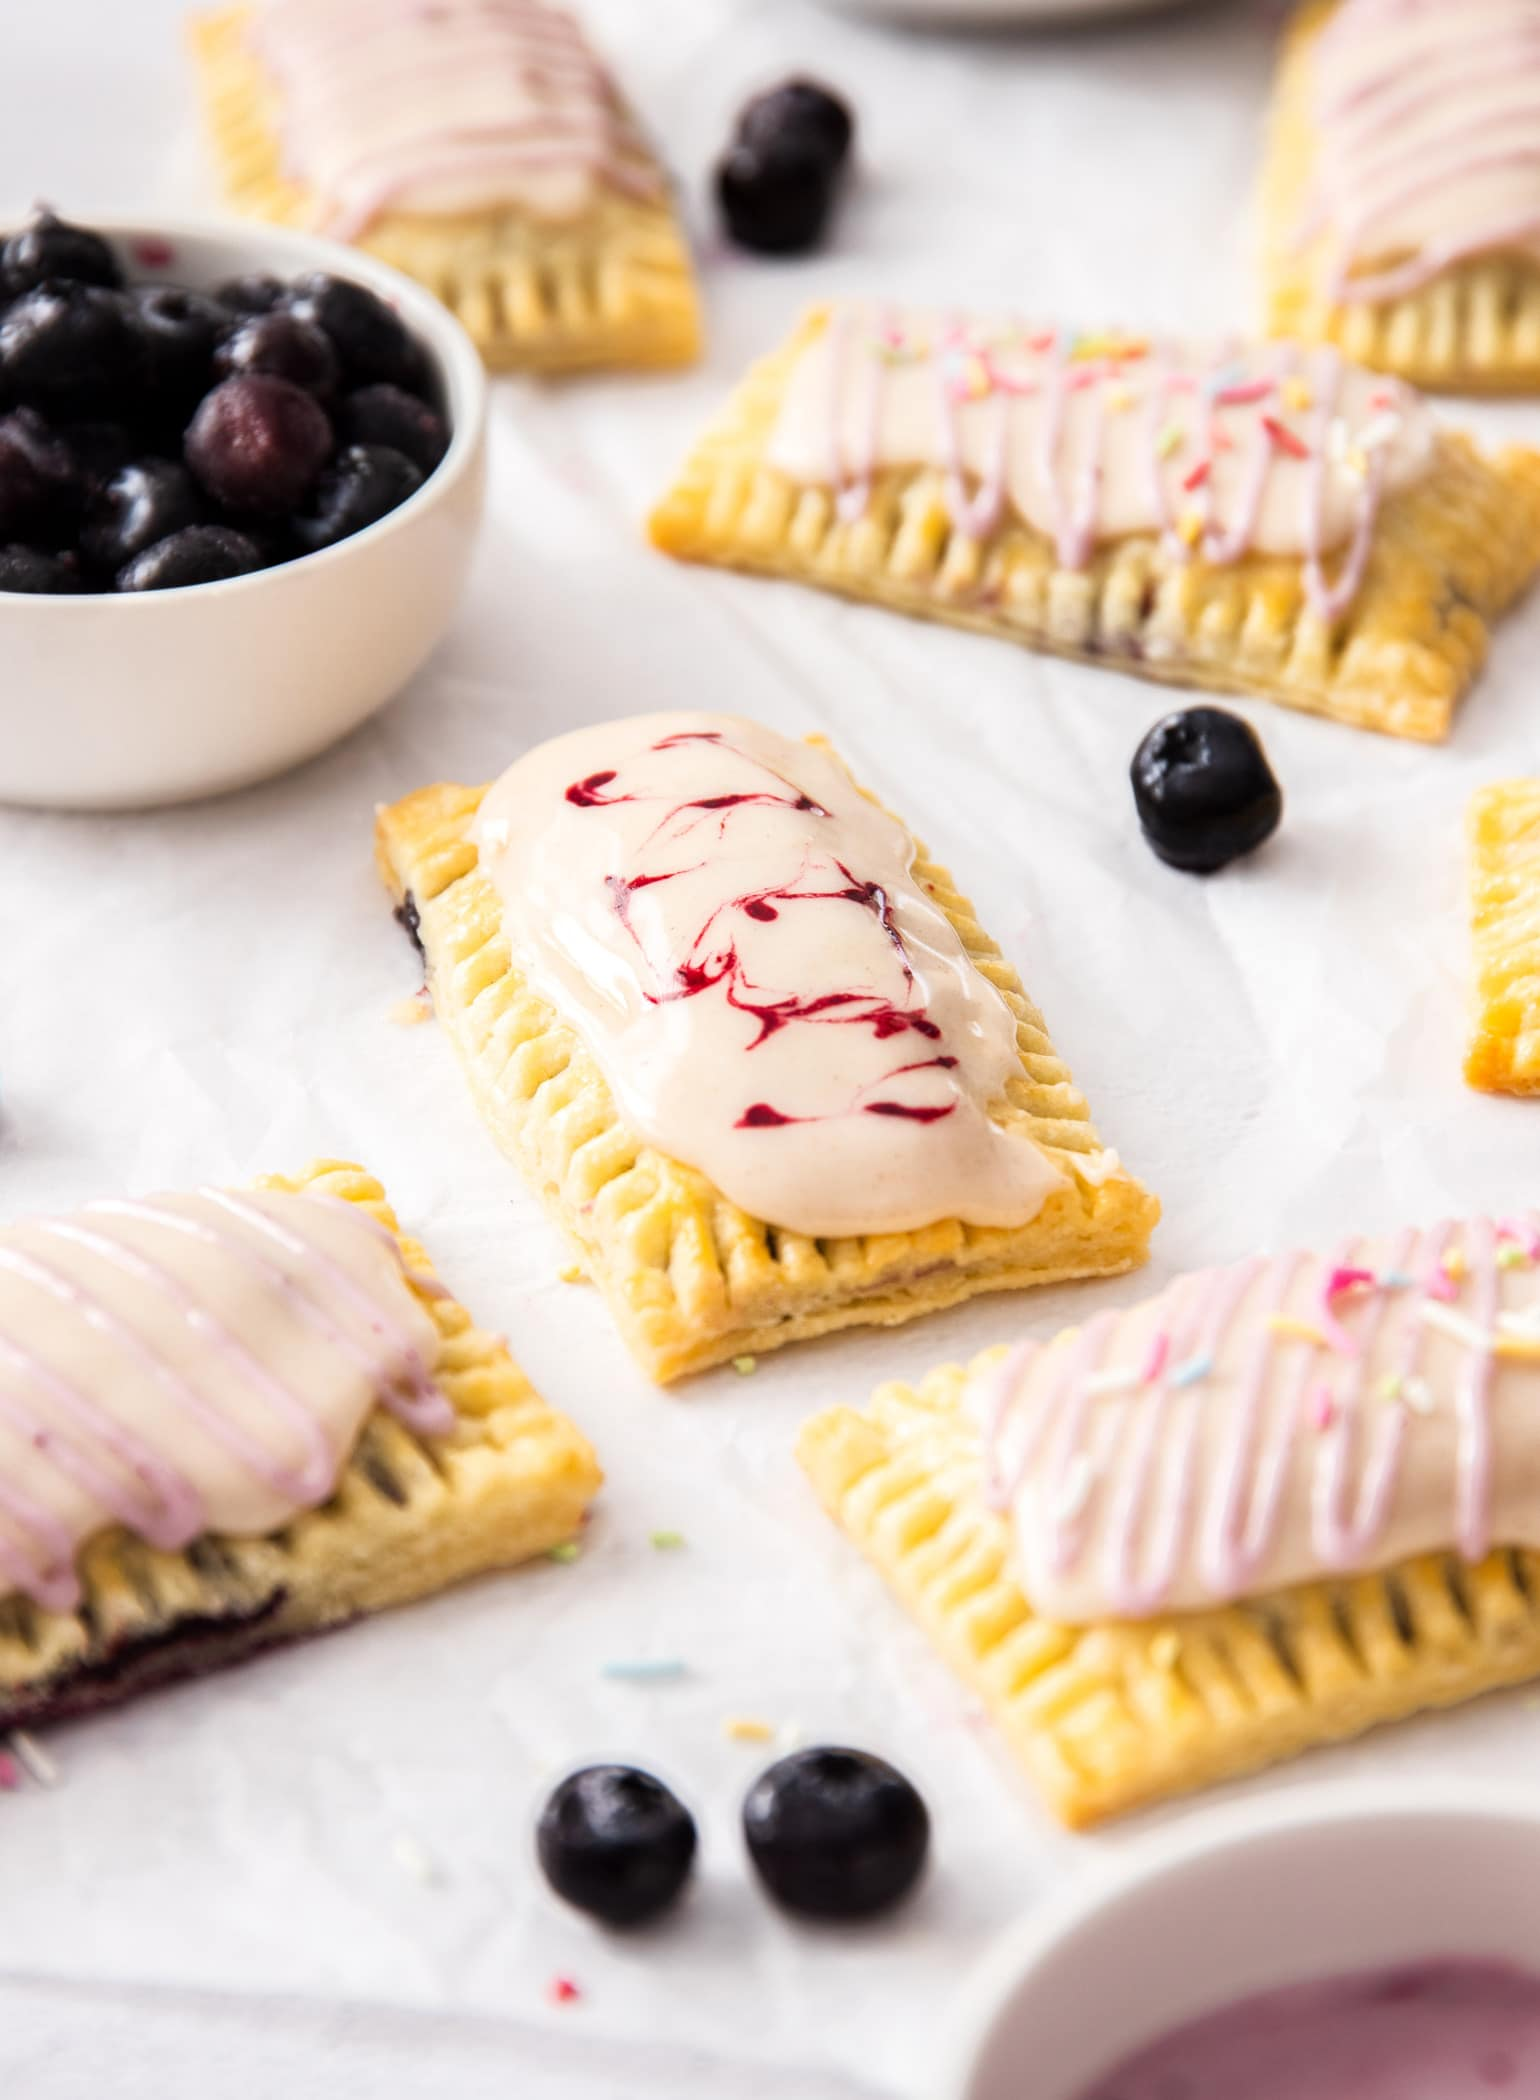 A batch of homemade pop tarts on a sheet of white baking paper. A small white bowl of blueberries.